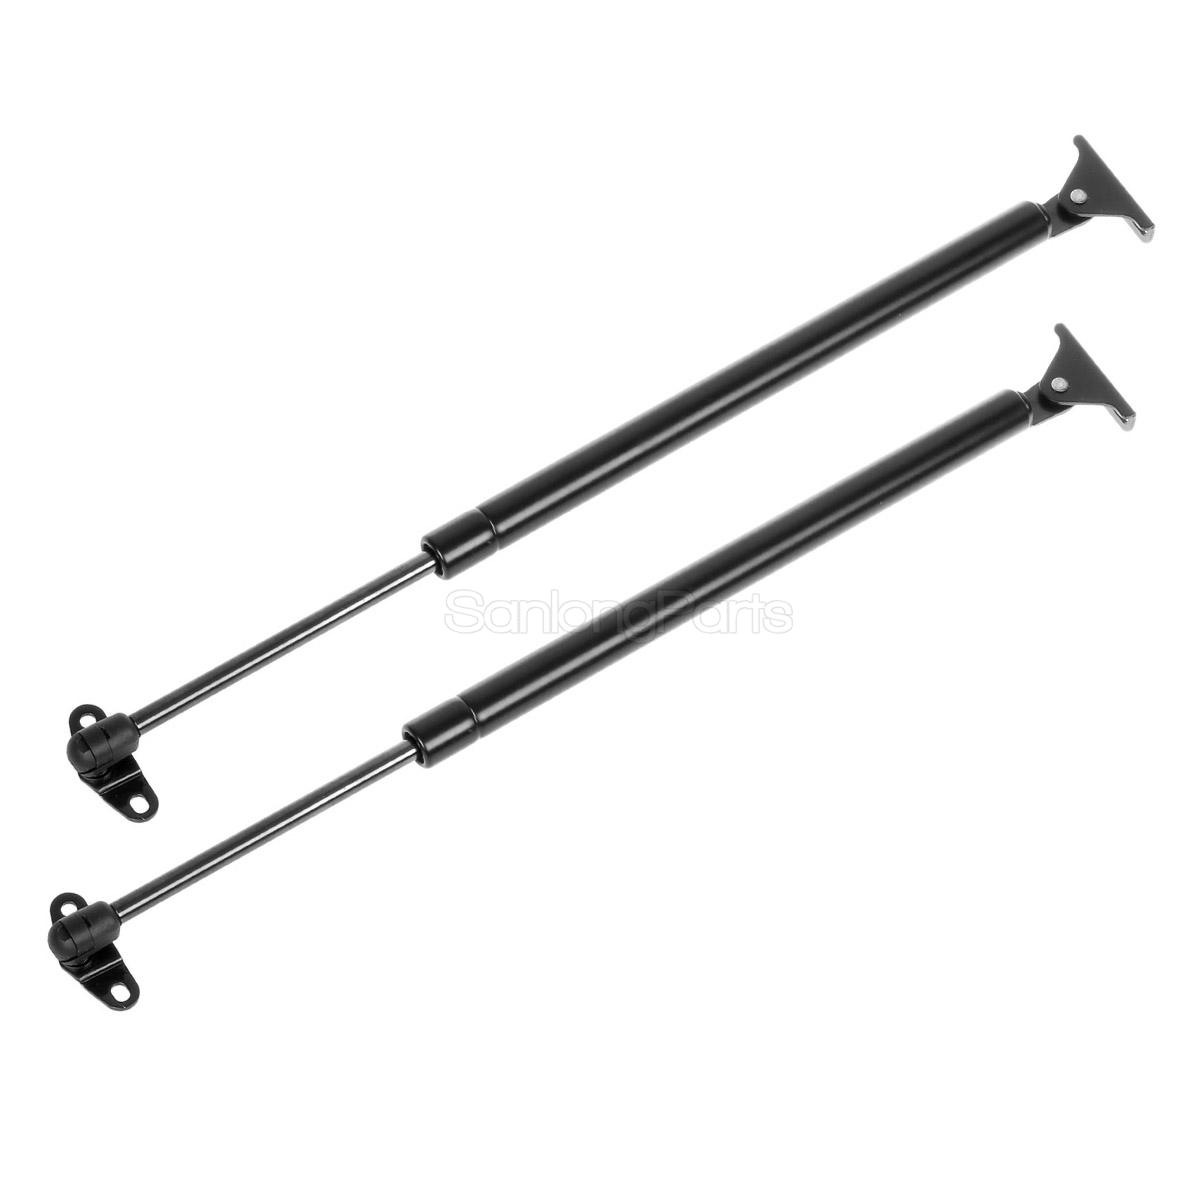 1 Pair Lift Supports Shocks Struts For Lexus Rx300 Rear